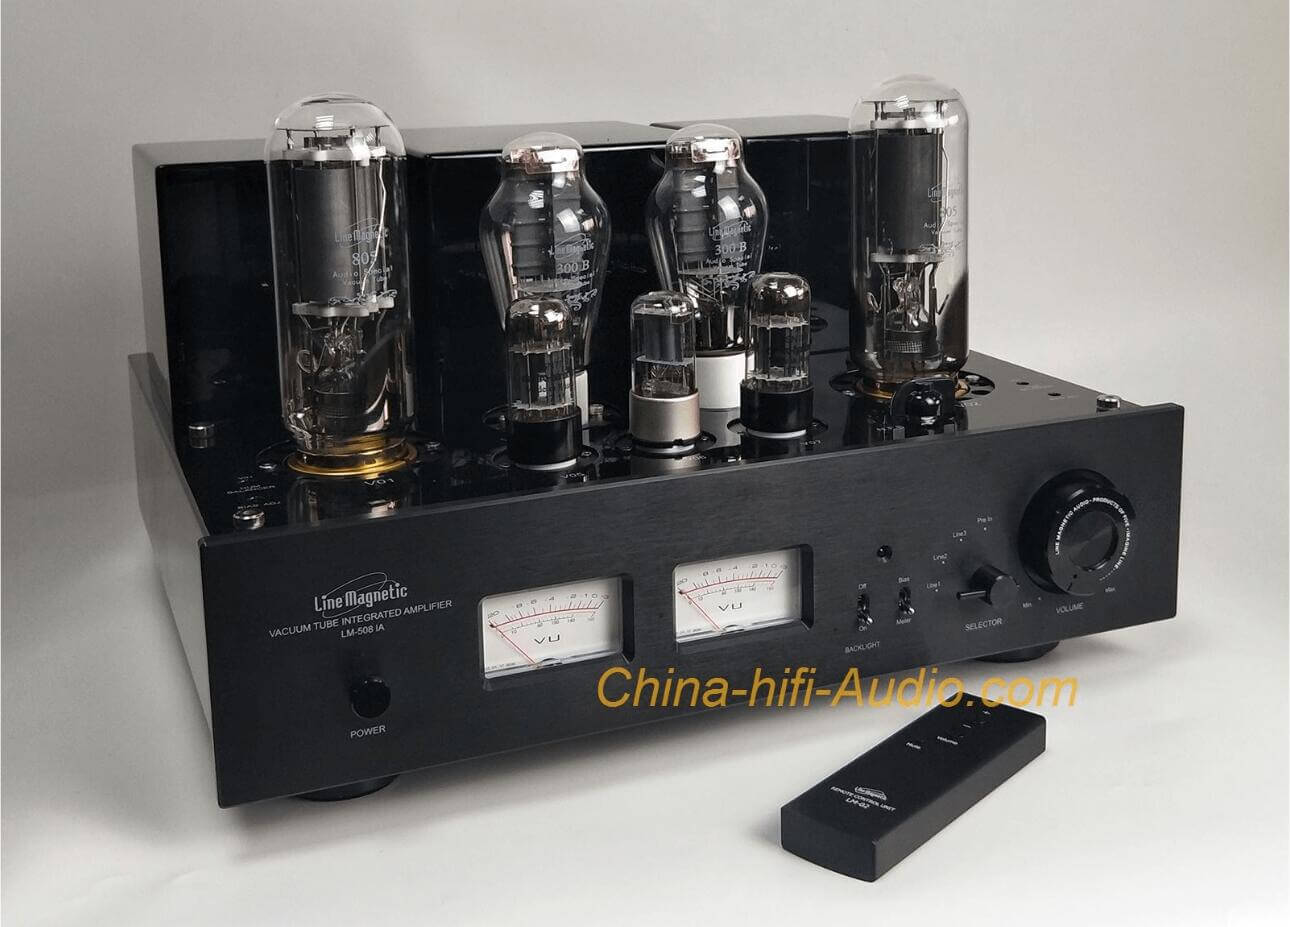 China-hifi-Audio Releases Handcrafted Audiophile Tube Amplifiers Made From the Finest Materials For High-End Home Theater Systems